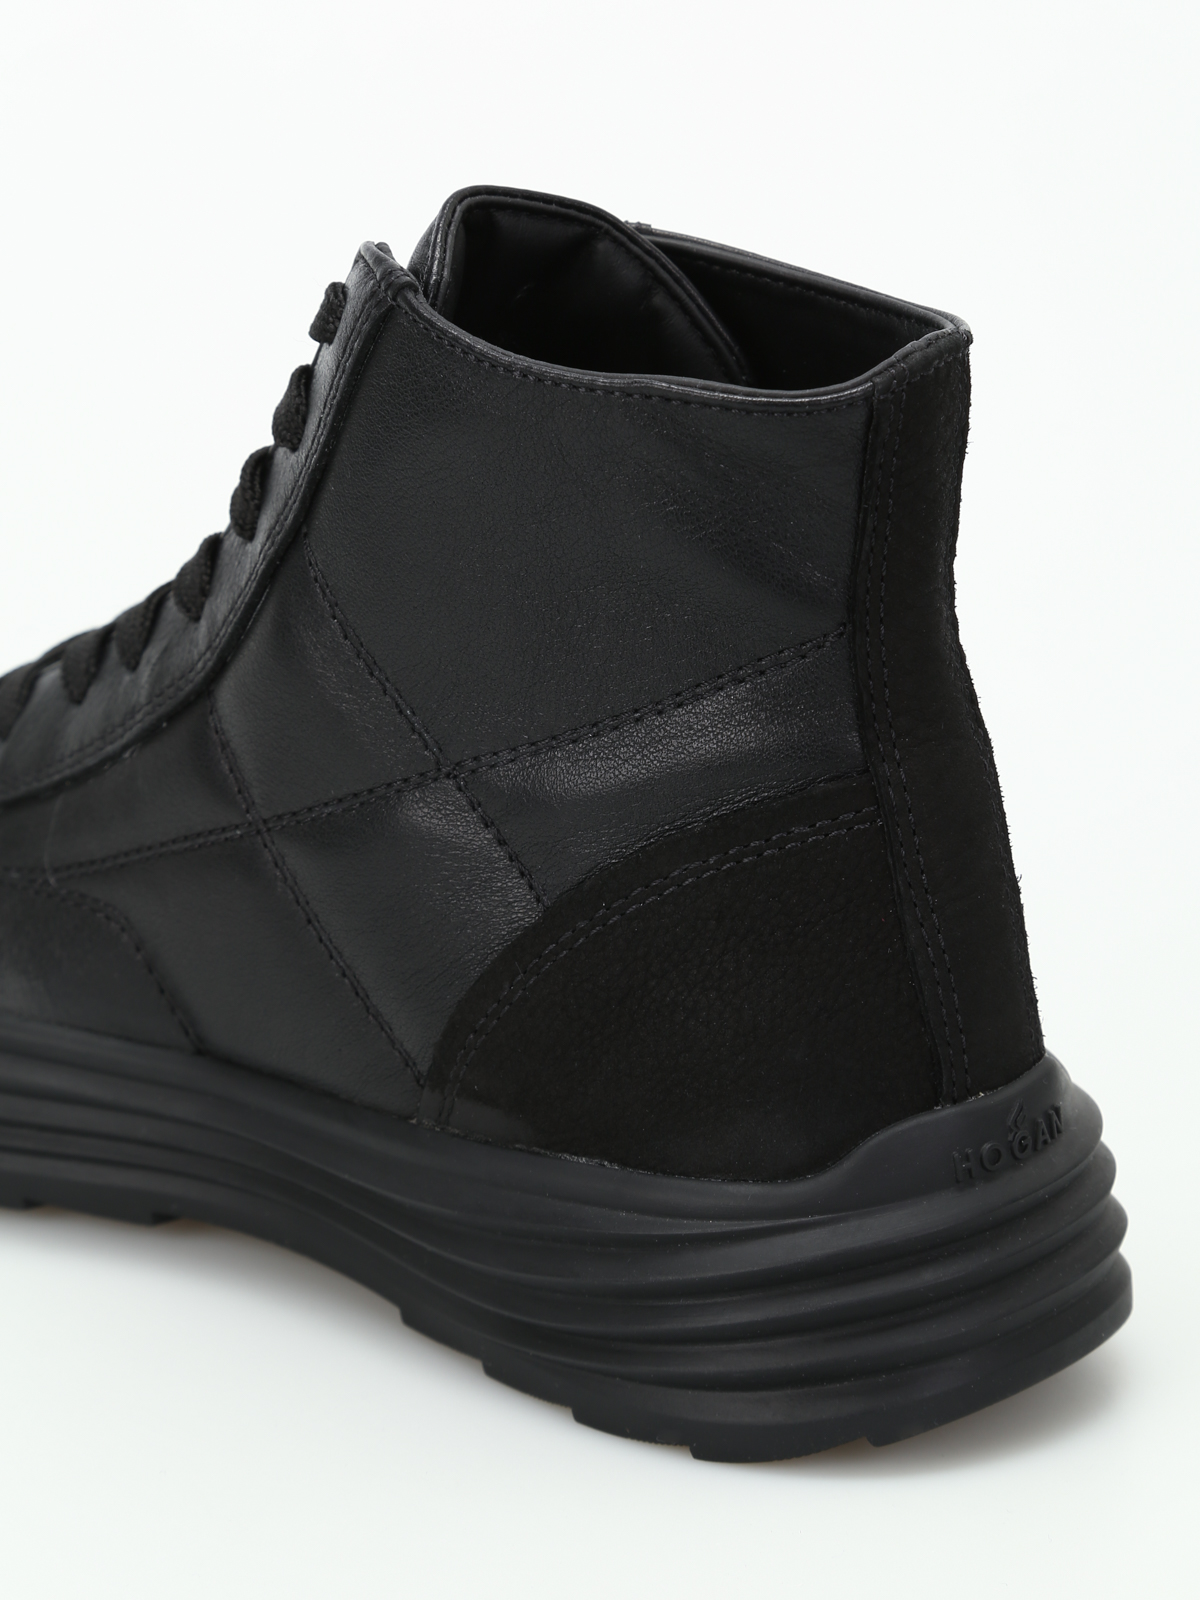 Hogan - H341 Helix hi-top leather sneakers - trainers ...